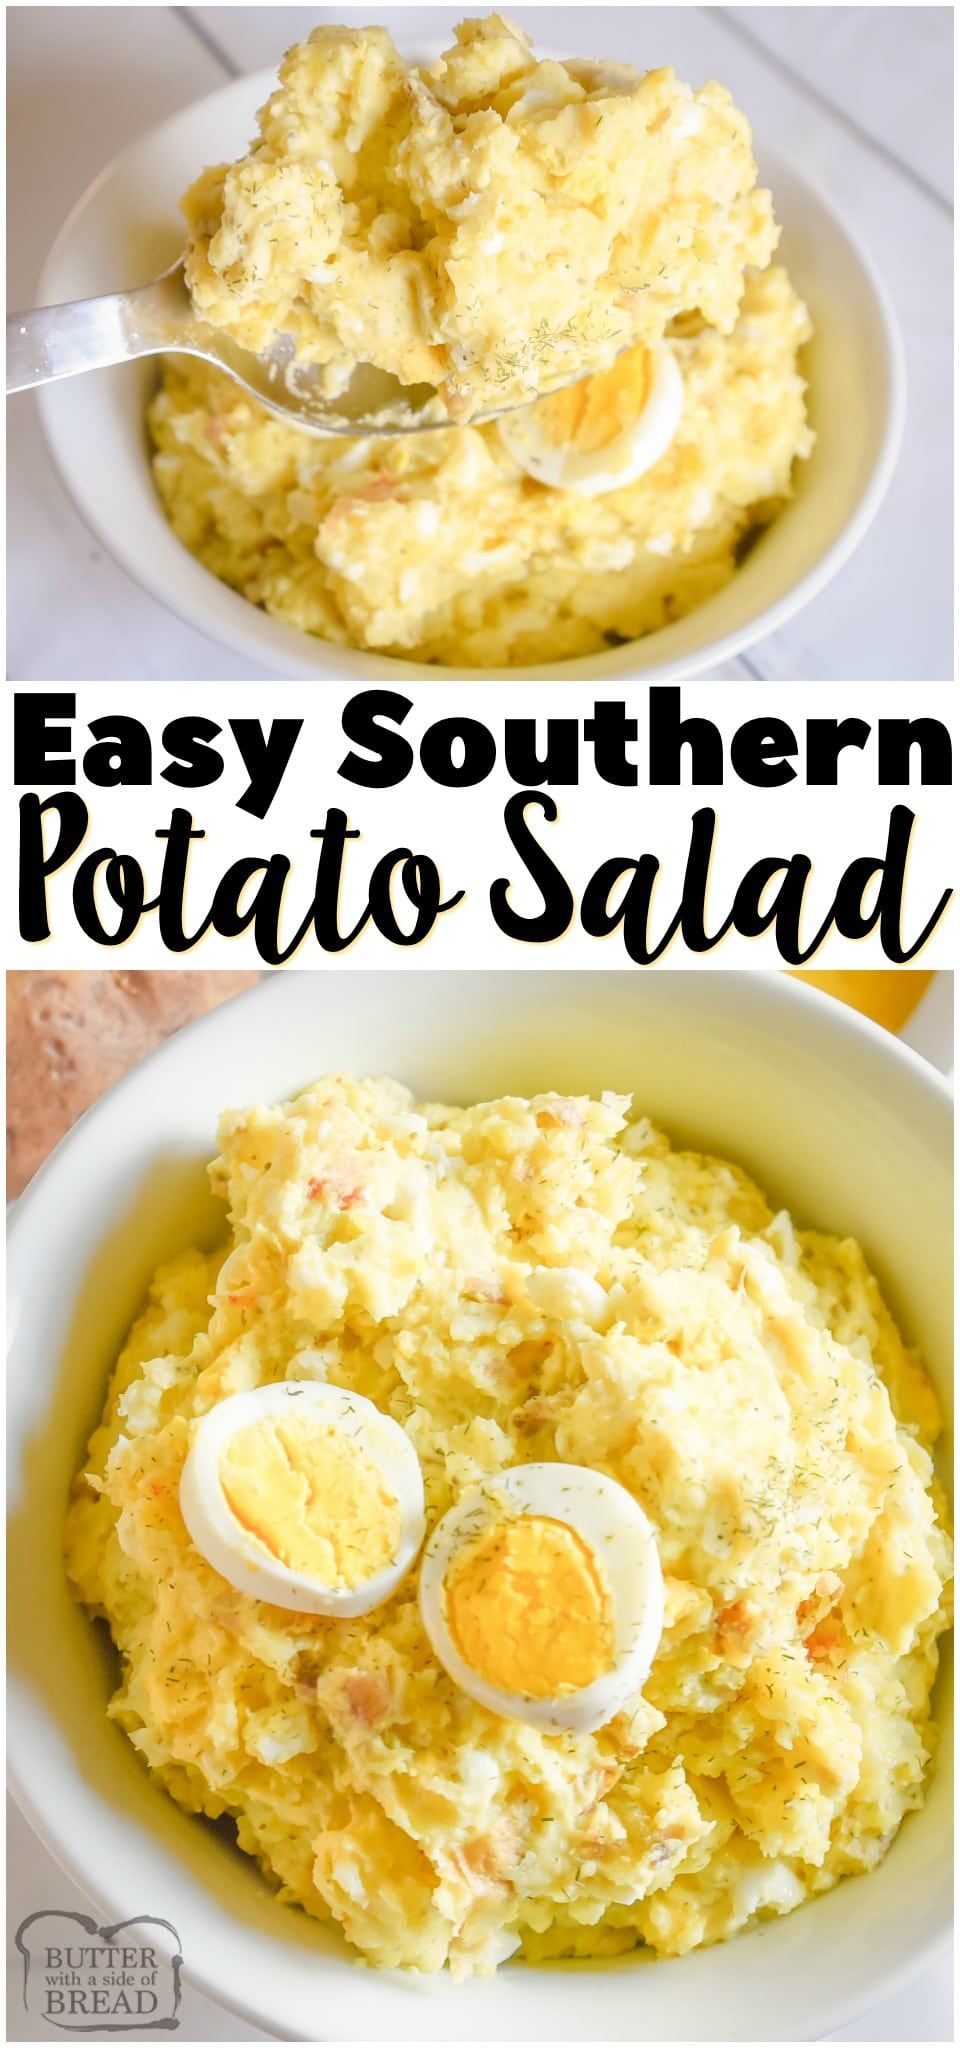 Southern Potato Salad recipe perfect for summer bbq's and get-togethers! Easy potato salad made with Yukon gold potatoes, hard boiled eggs and a simple tangy dressing. #salad #potatoes #potatosalad #southern #recipe #bbq #summer from BUTTER WITH A SIDE OF BREAD